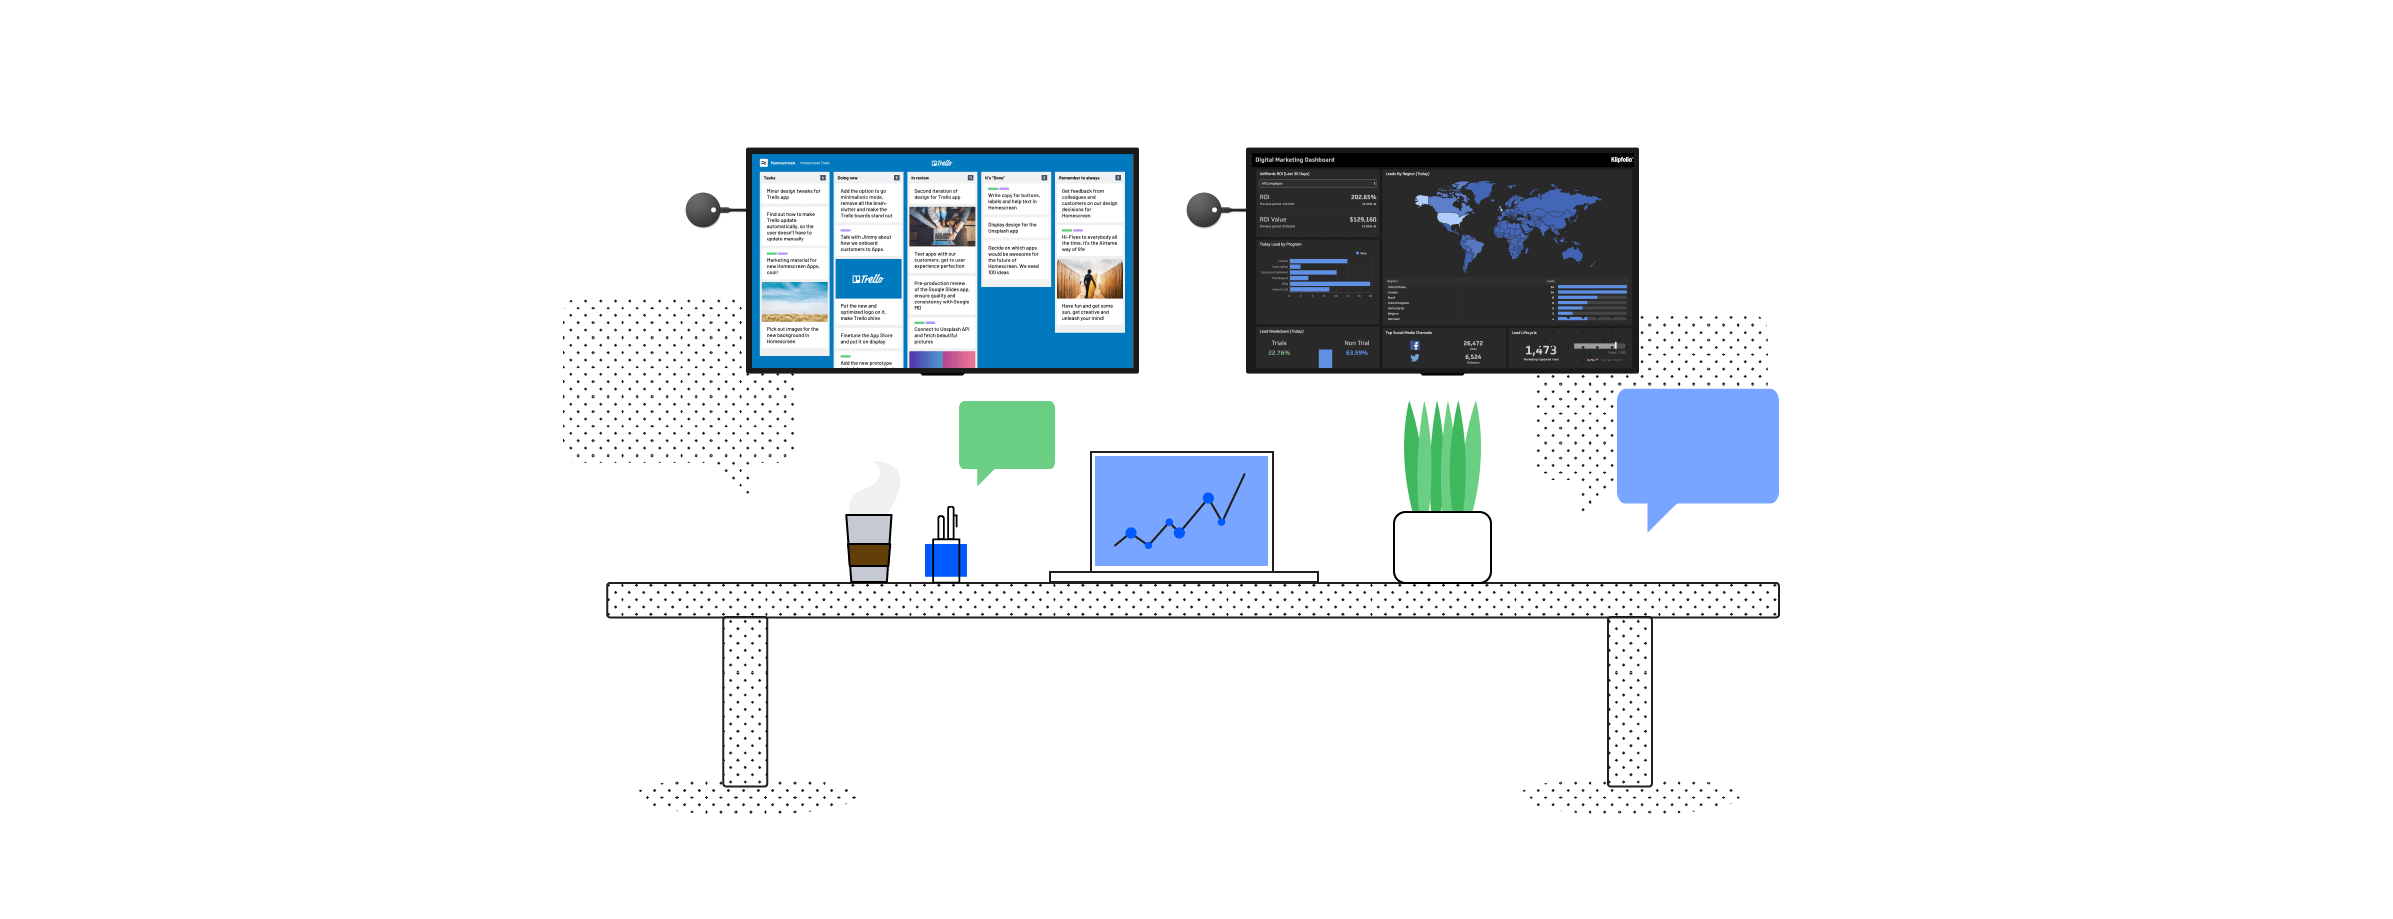 Use Airtame Cloud apps to present digital signage and your project management boards from Trello